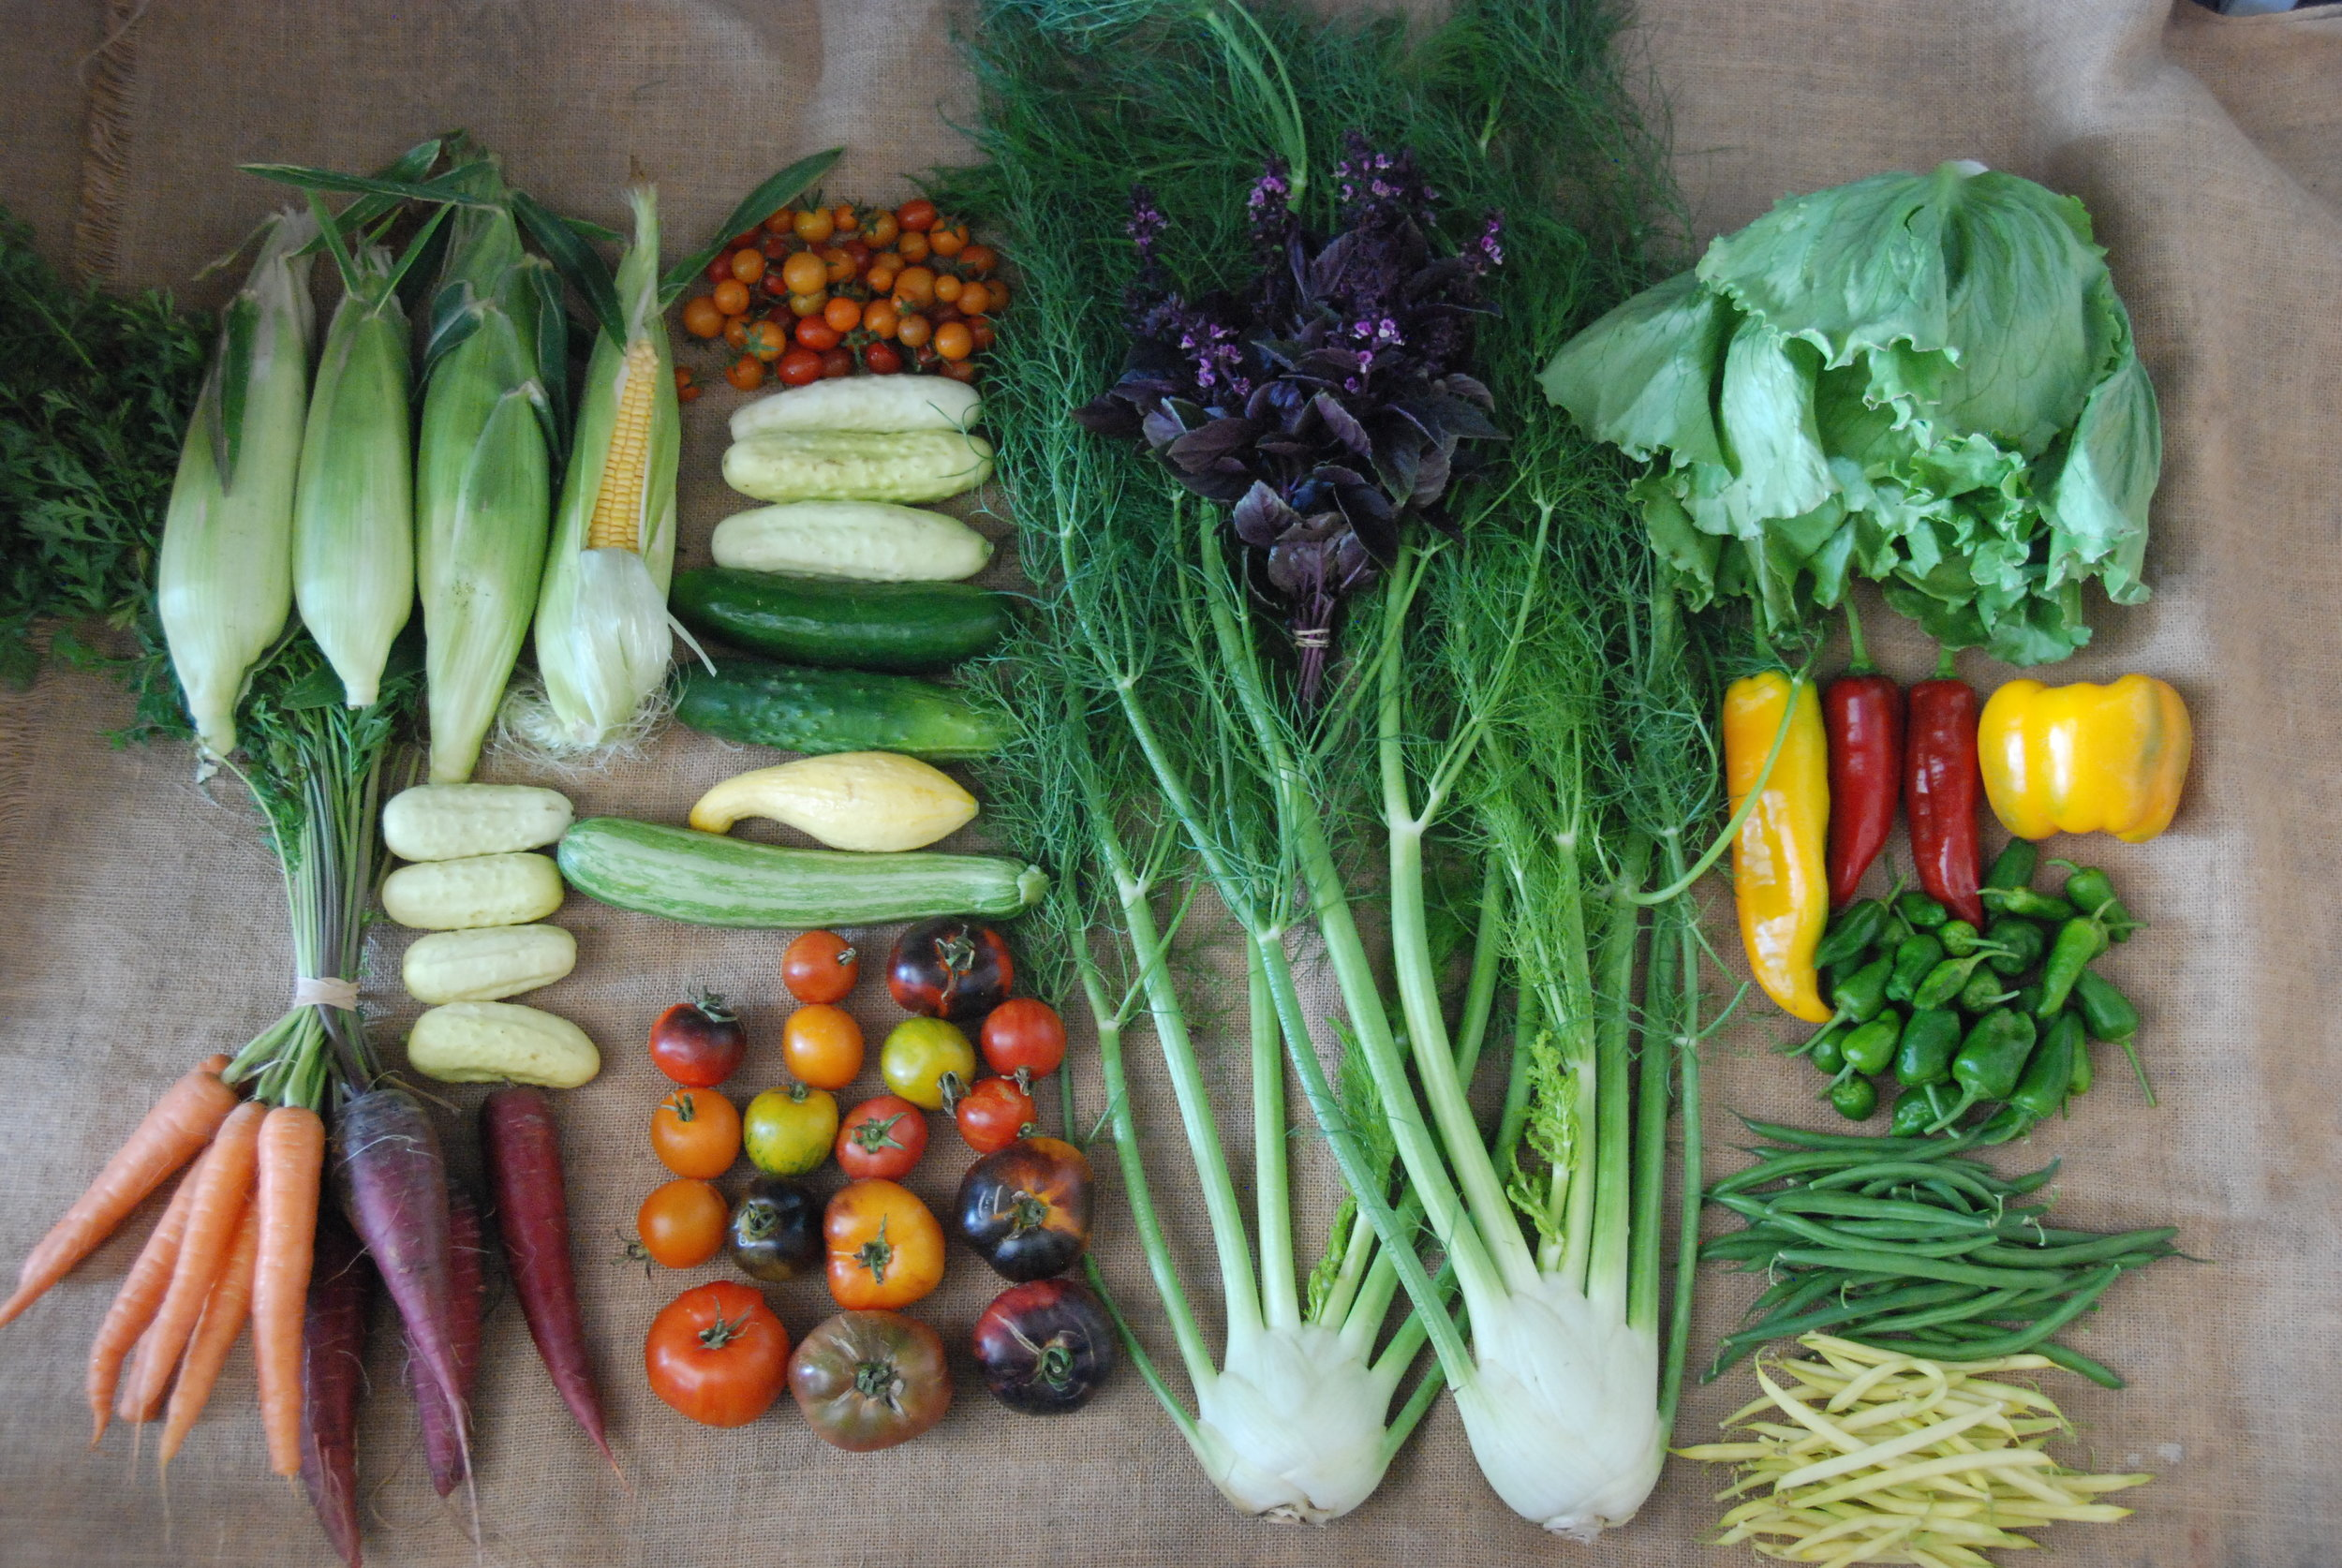 A CSA share from Week 15 of our 2018-2019 season.